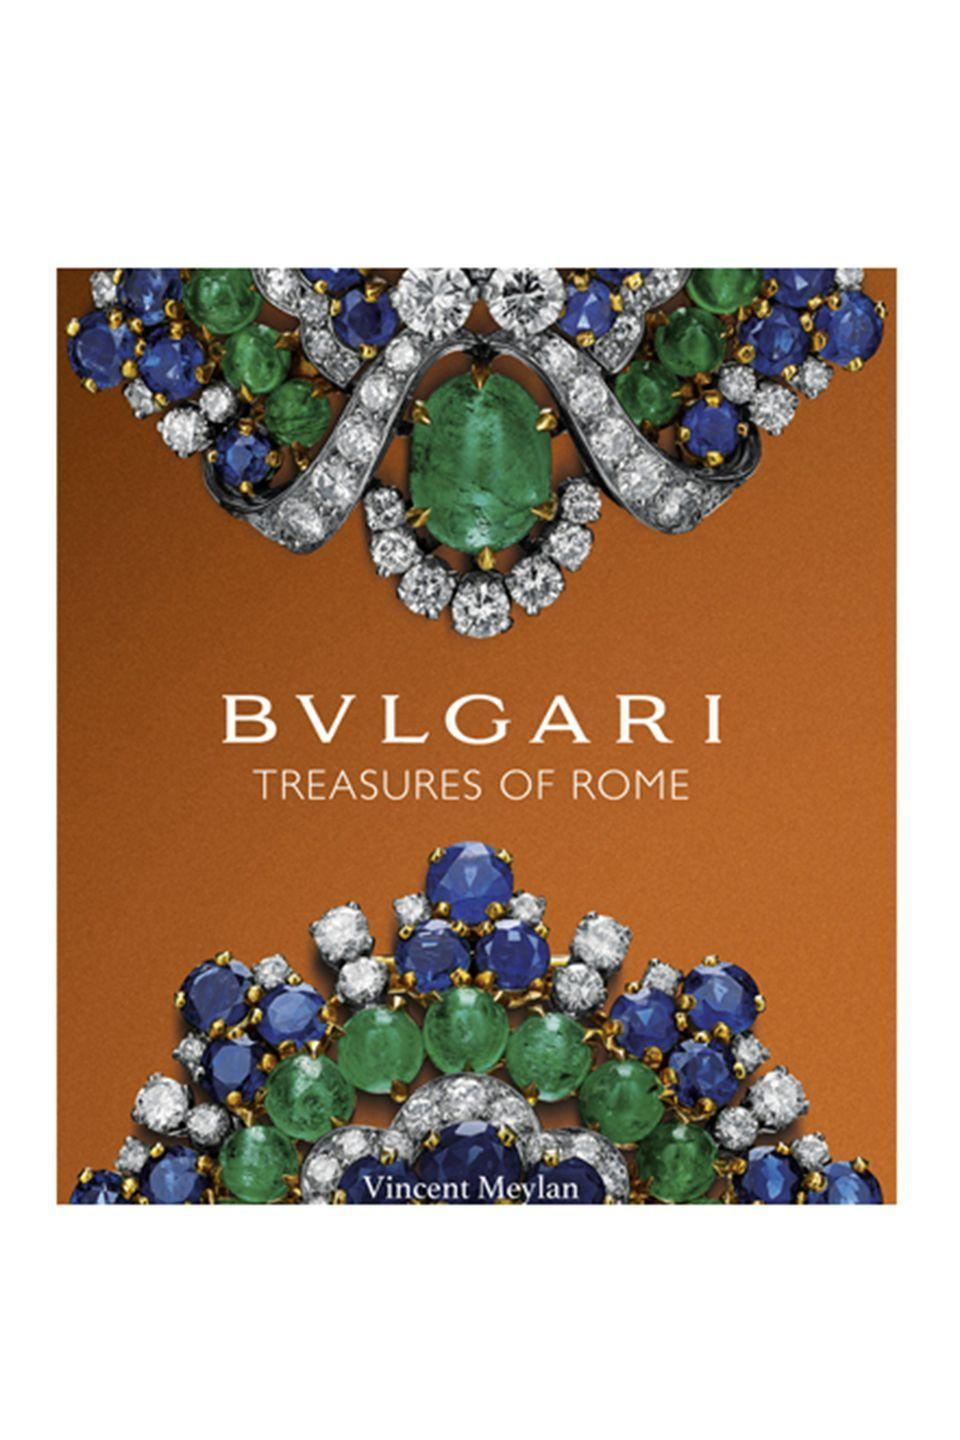 "<p><a href=""https://www.waterstones.com/book/bulgari/vincent-meylan/9781851498796"" rel=""nofollow noopener"" target=""_blank"" data-ylk=""slk:SHOP NOW"" class=""link rapid-noclick-resp"">SHOP NOW</a></p><p>Ever wondered how iconic pieces of jewellery are made? This book tells the story of Bulgari's jewellery making – all the way from mining the diamonds to the finished piece. With stories of how Richard Burton wooed Elizabeth Taylor with glittering Bulgari jewels, Bulgari is a beautiful new book celebrating the work of this Rome-based jeweller and all the anecdotes that are intertwined with it. </p><p><em>Blvgari: Treasures of Rome, £55, Waterstones</em><br></p>"